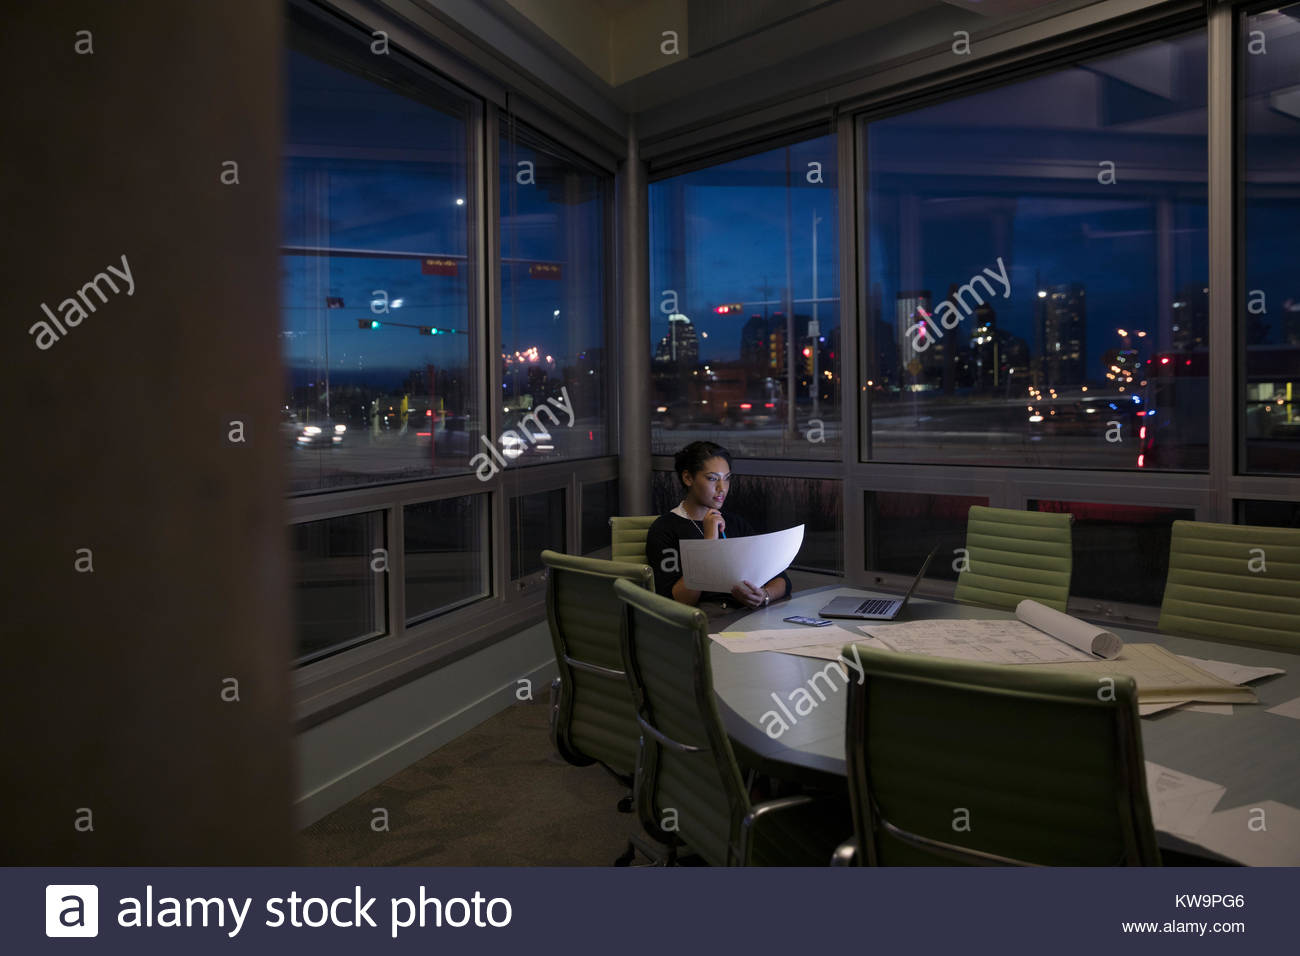 Dedicated female architect working late,reviewing blueprints in dark urban conference room - Stock Image